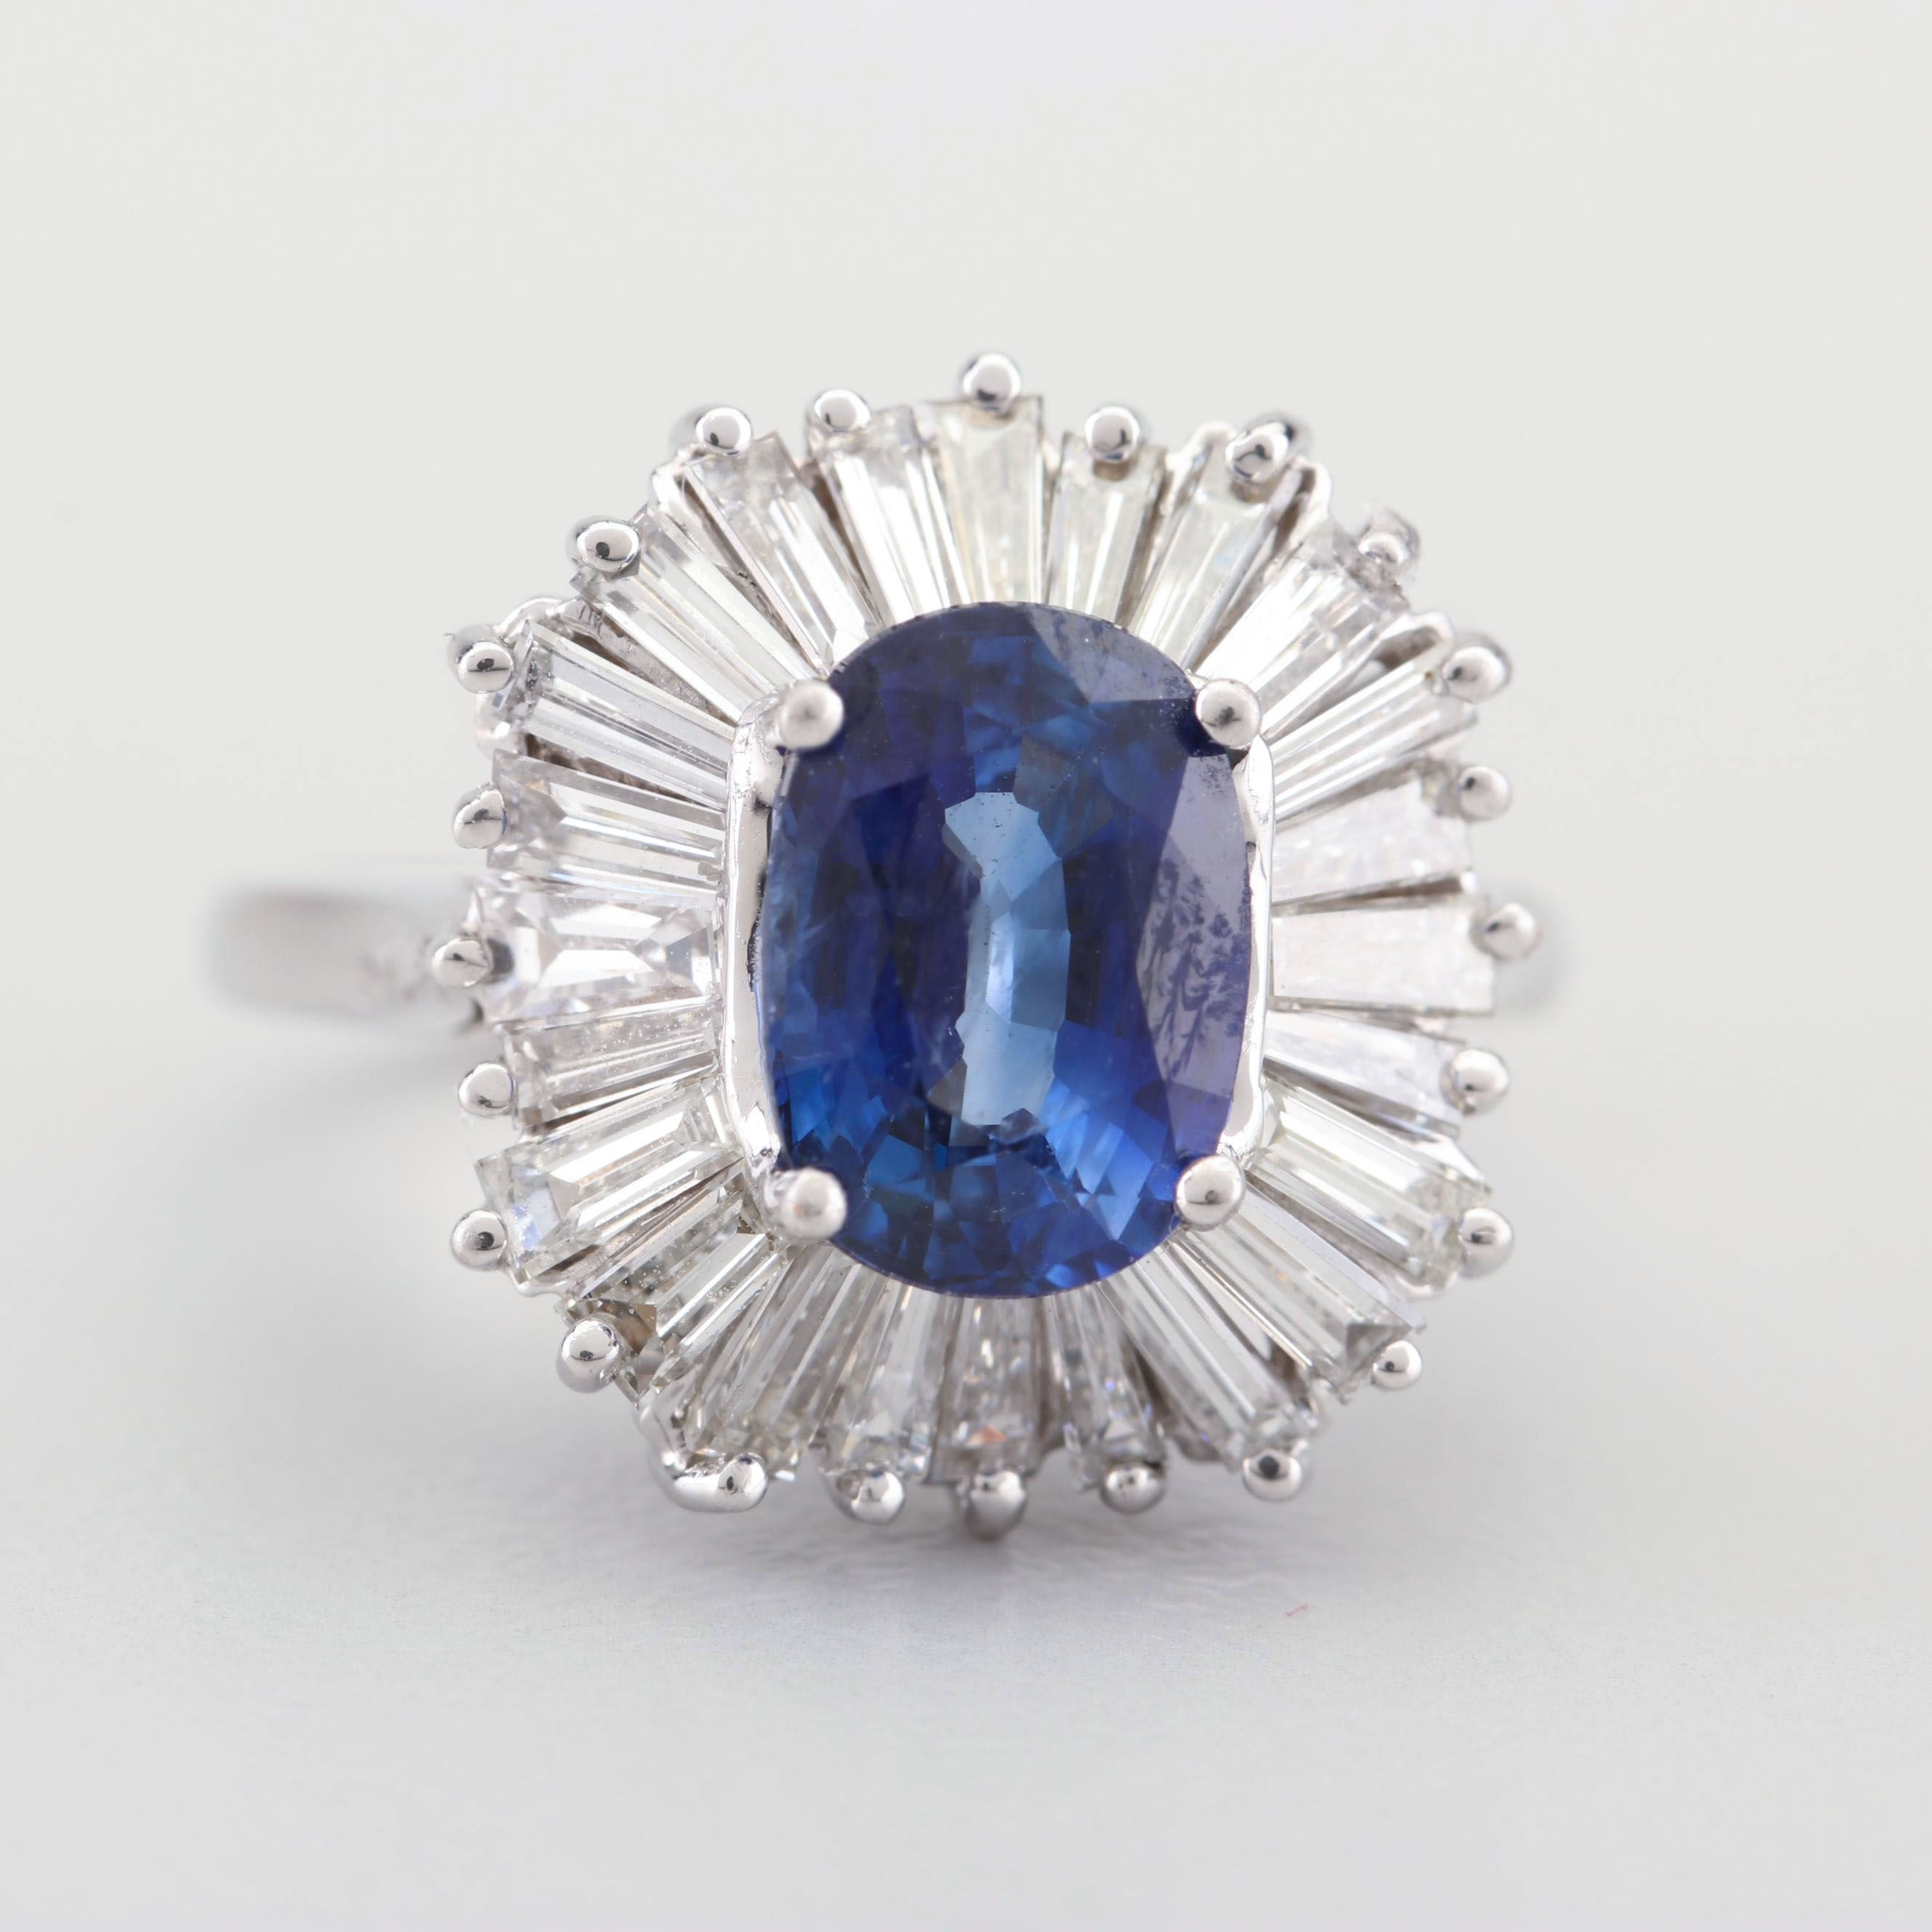 14K White Gold 2.10 CT Sapphire and 1.65 CTW Diamond Ring with GIA Report